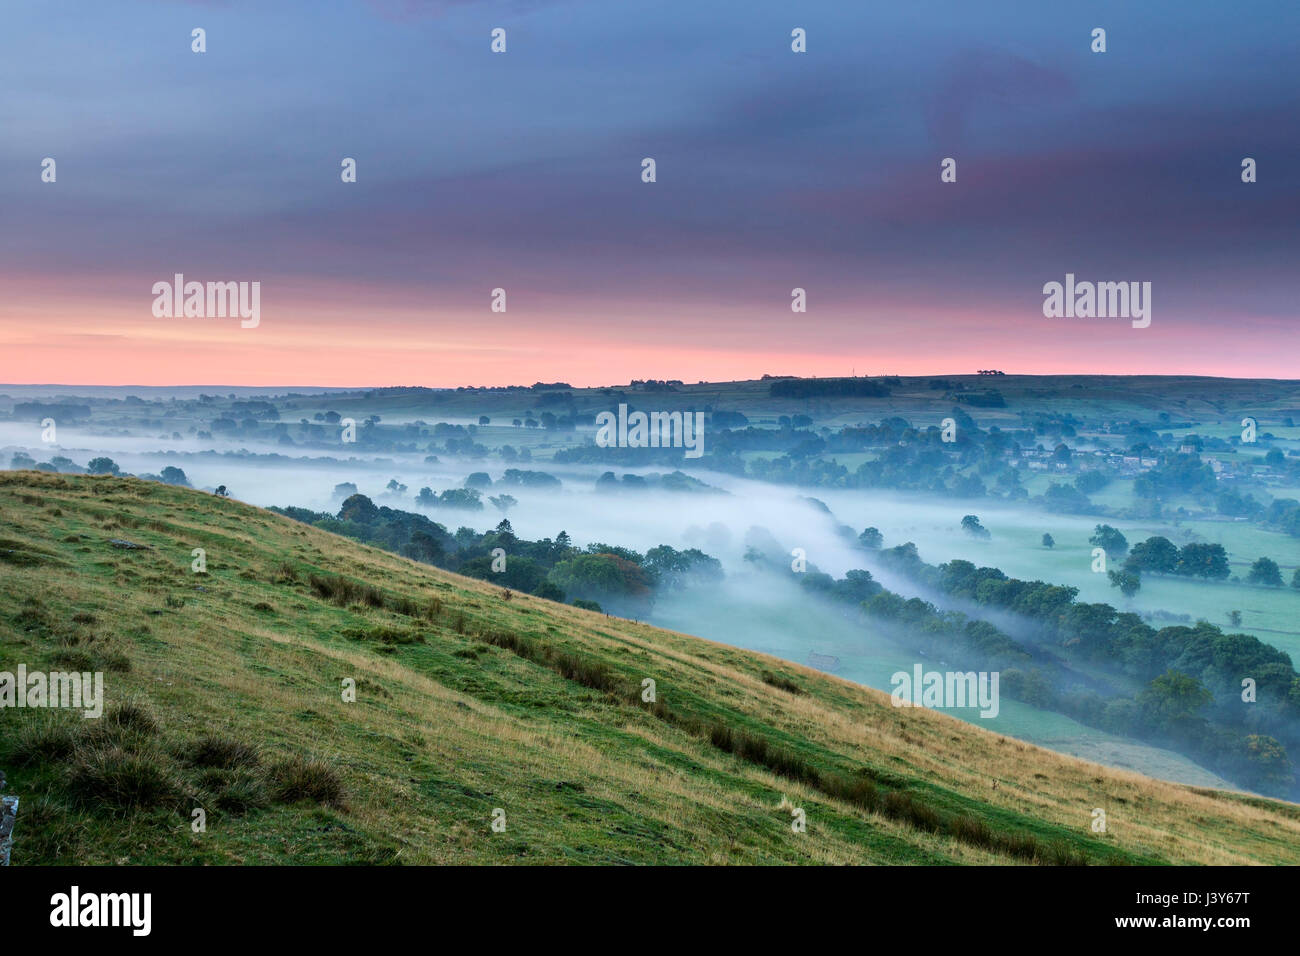 The View South Along the River Tees Towards Mickleton from the Whistle Crag Viewpoint Near Middleton-in-Teesdale, - Stock Image